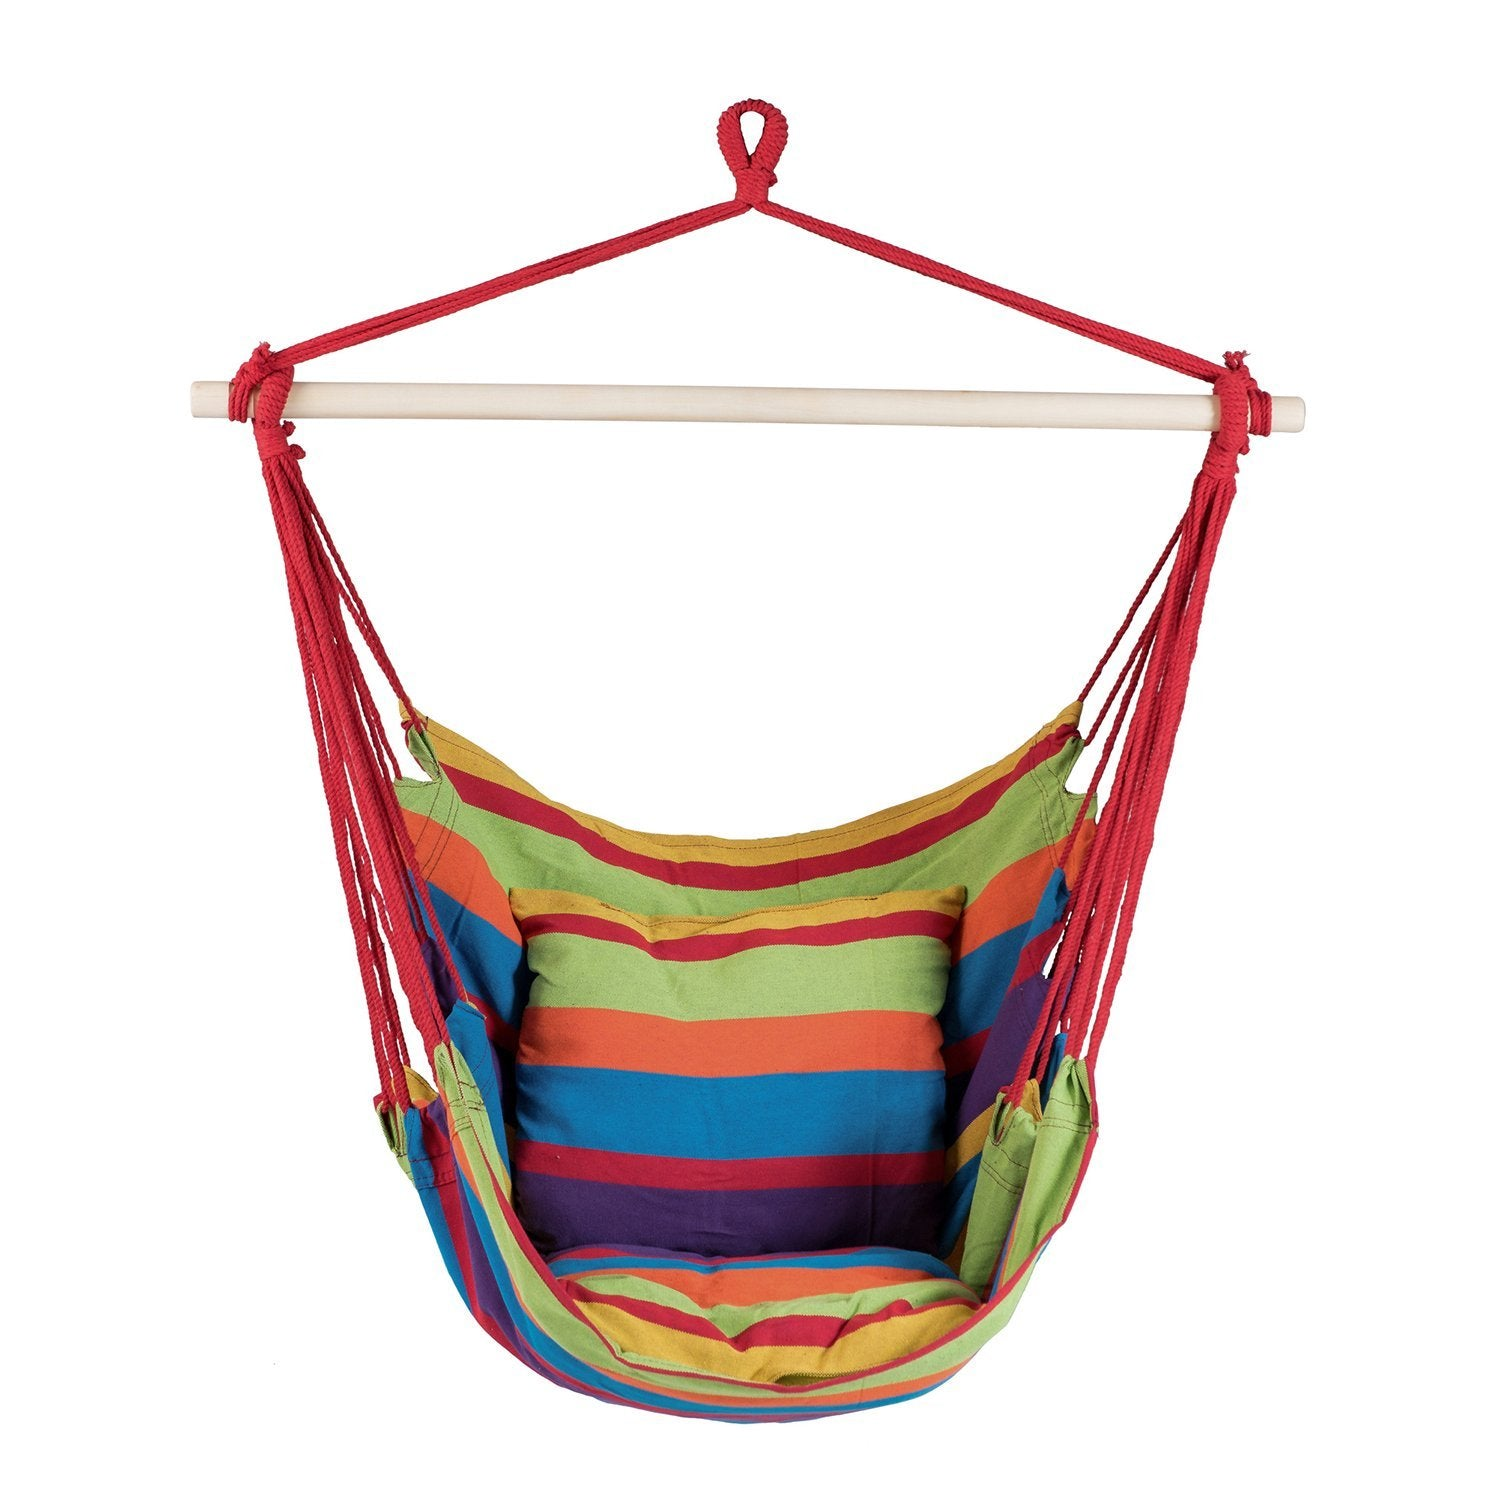 inspirational in images outdoor garden home of swing chair parts uk bed buy mesmerizing photos hammock